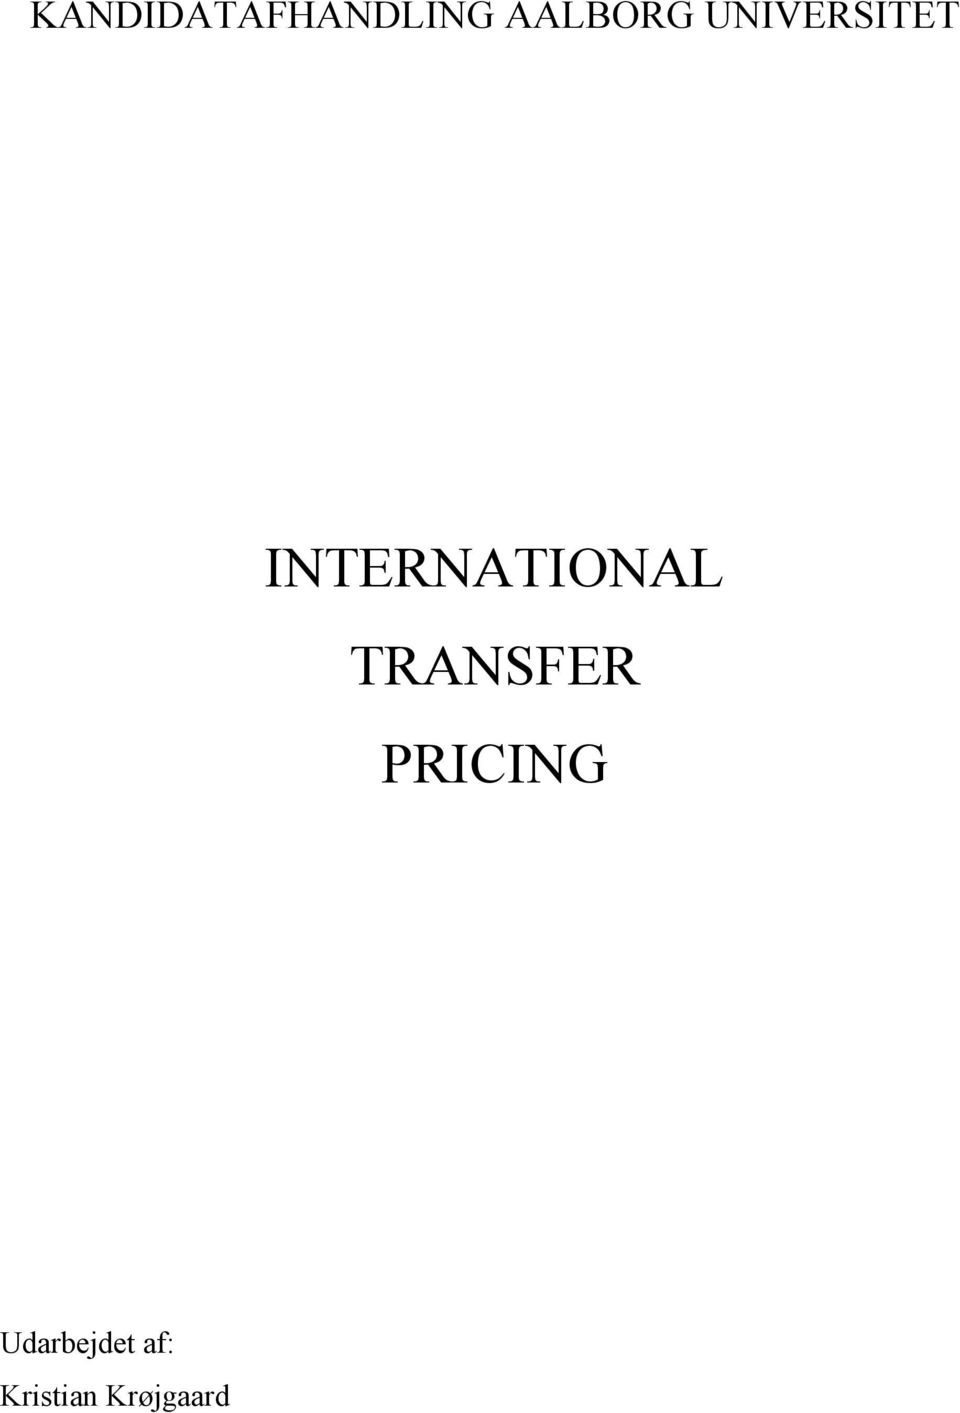 INTERNATIONAL TRANSFER